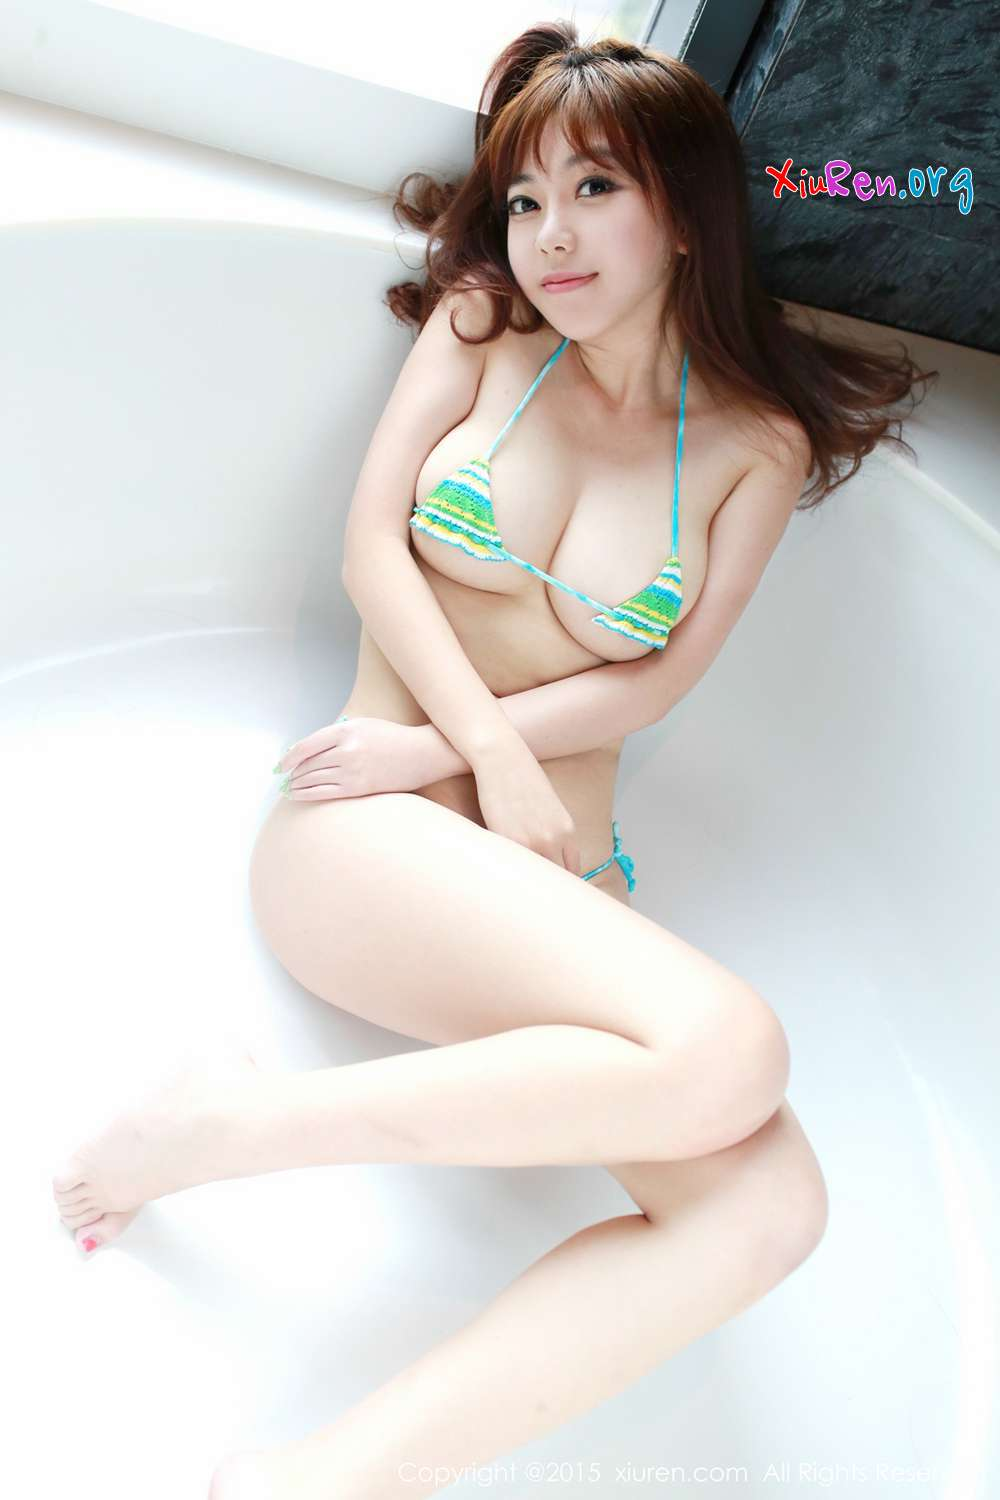 Creature -men fuck asian babes pics erotic gallery